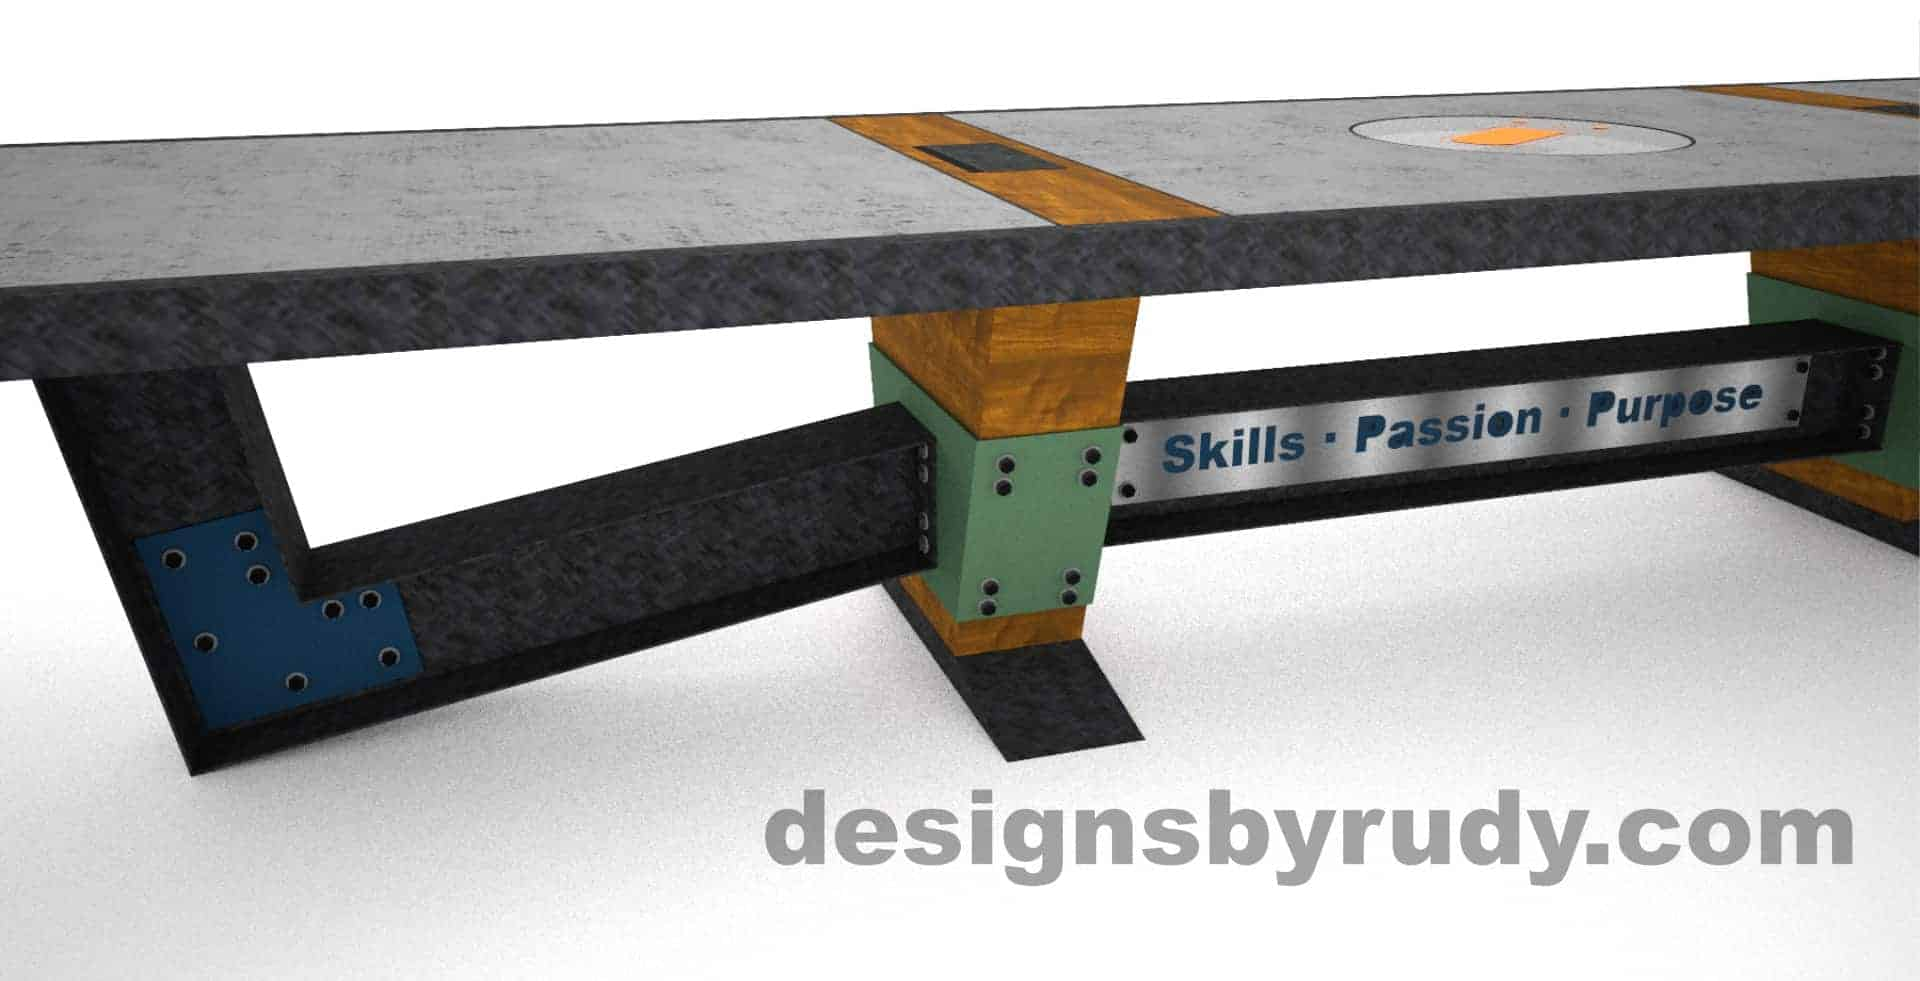 8 Concept concrete, steel, and wood conference table full top view